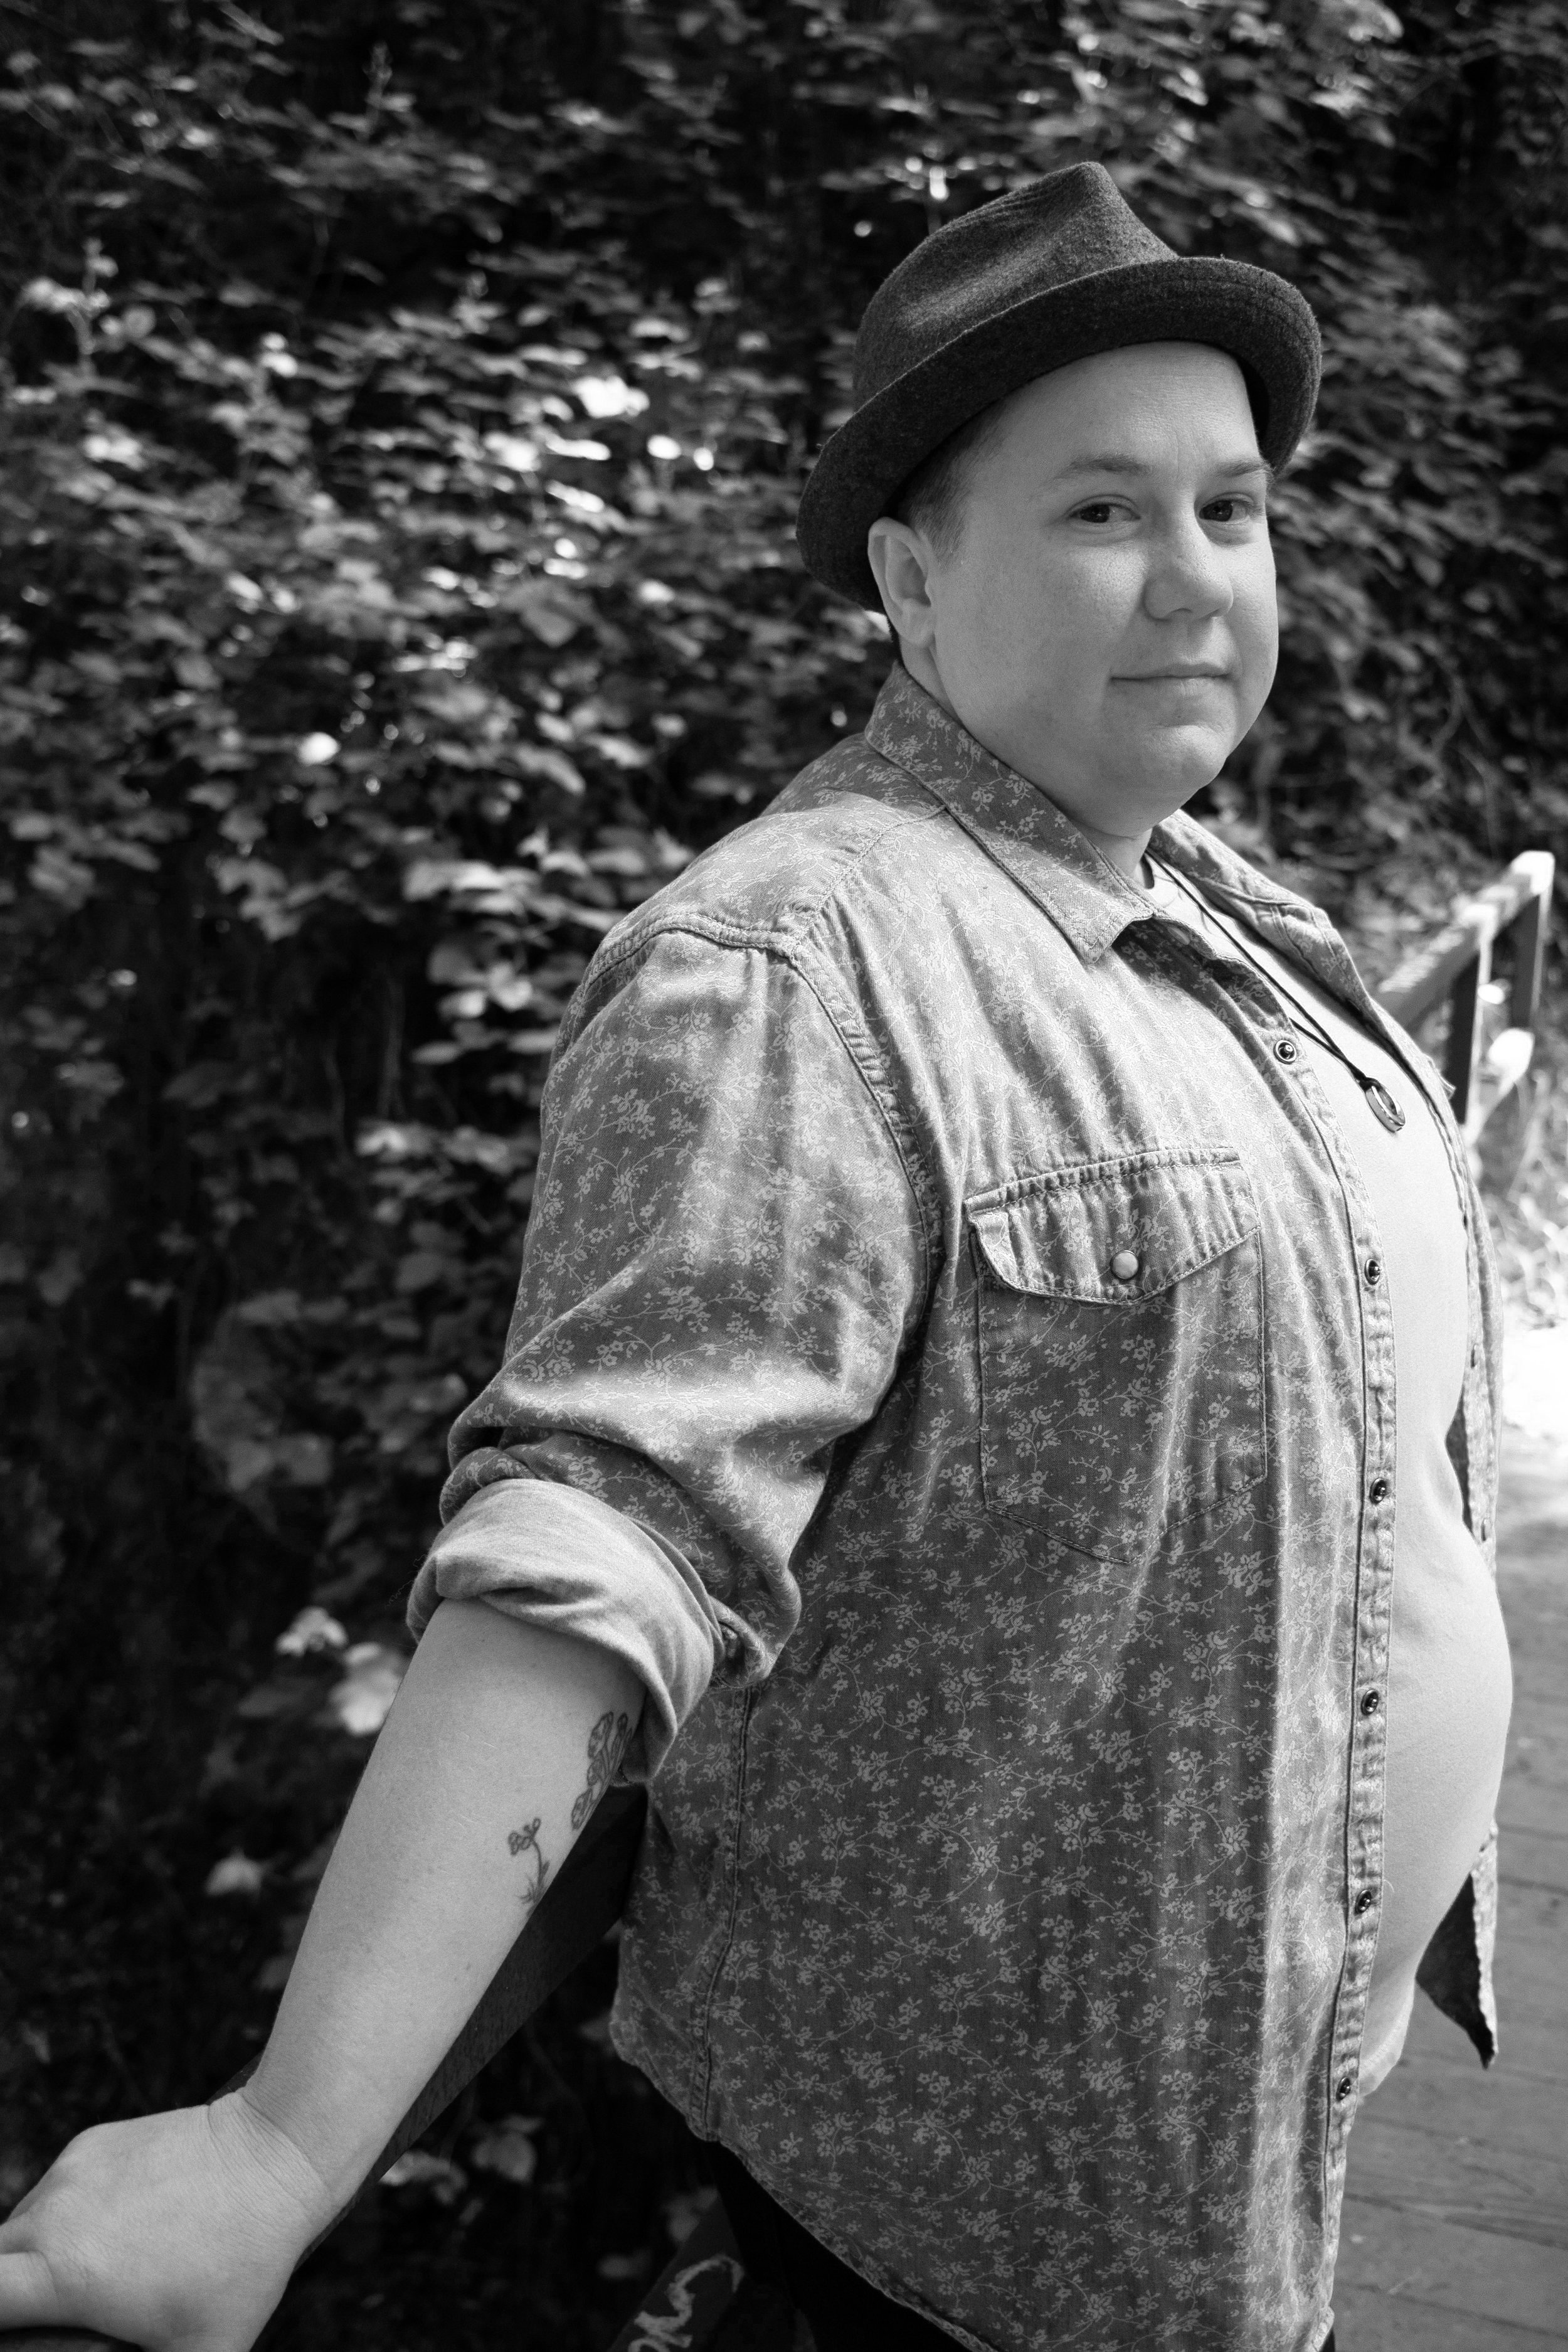 Dillbilly (pronouns: they/them) is a genre-queer songbird from the rural Midwest whose sound migrates across folk, Americana, roots, alt-country, and rock. The vehicles of their songs alternate between piano, guitar, ukulele, and banjo. Currently, Dillbilly has made a home in Oakland, California, where they have teamed up with renowned musician and producer Julie Wolf to create their tenth full-length record, which will be released in 2019 by Waxsimile Productions.